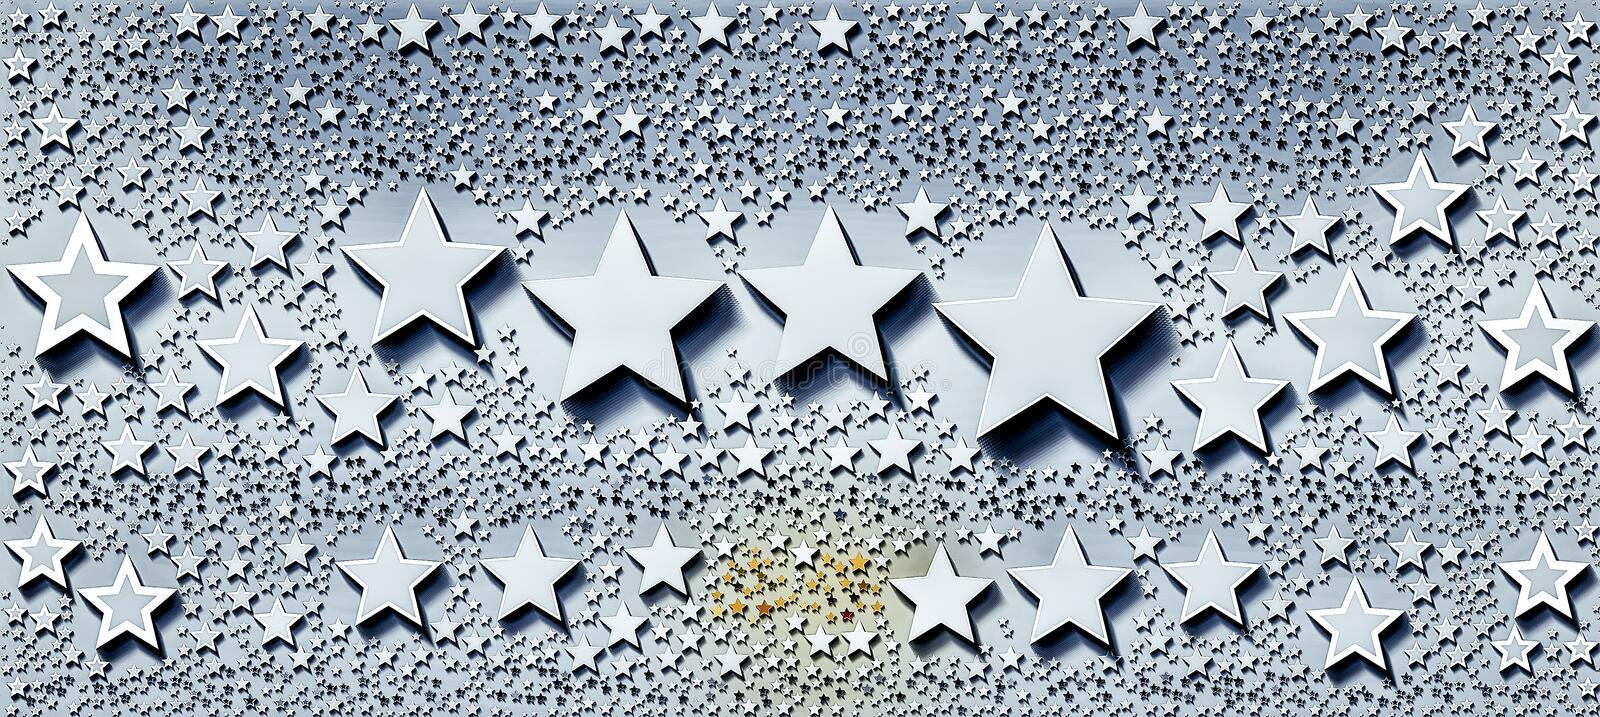 Trail of stars with different shapes and sizes royalty free illustration